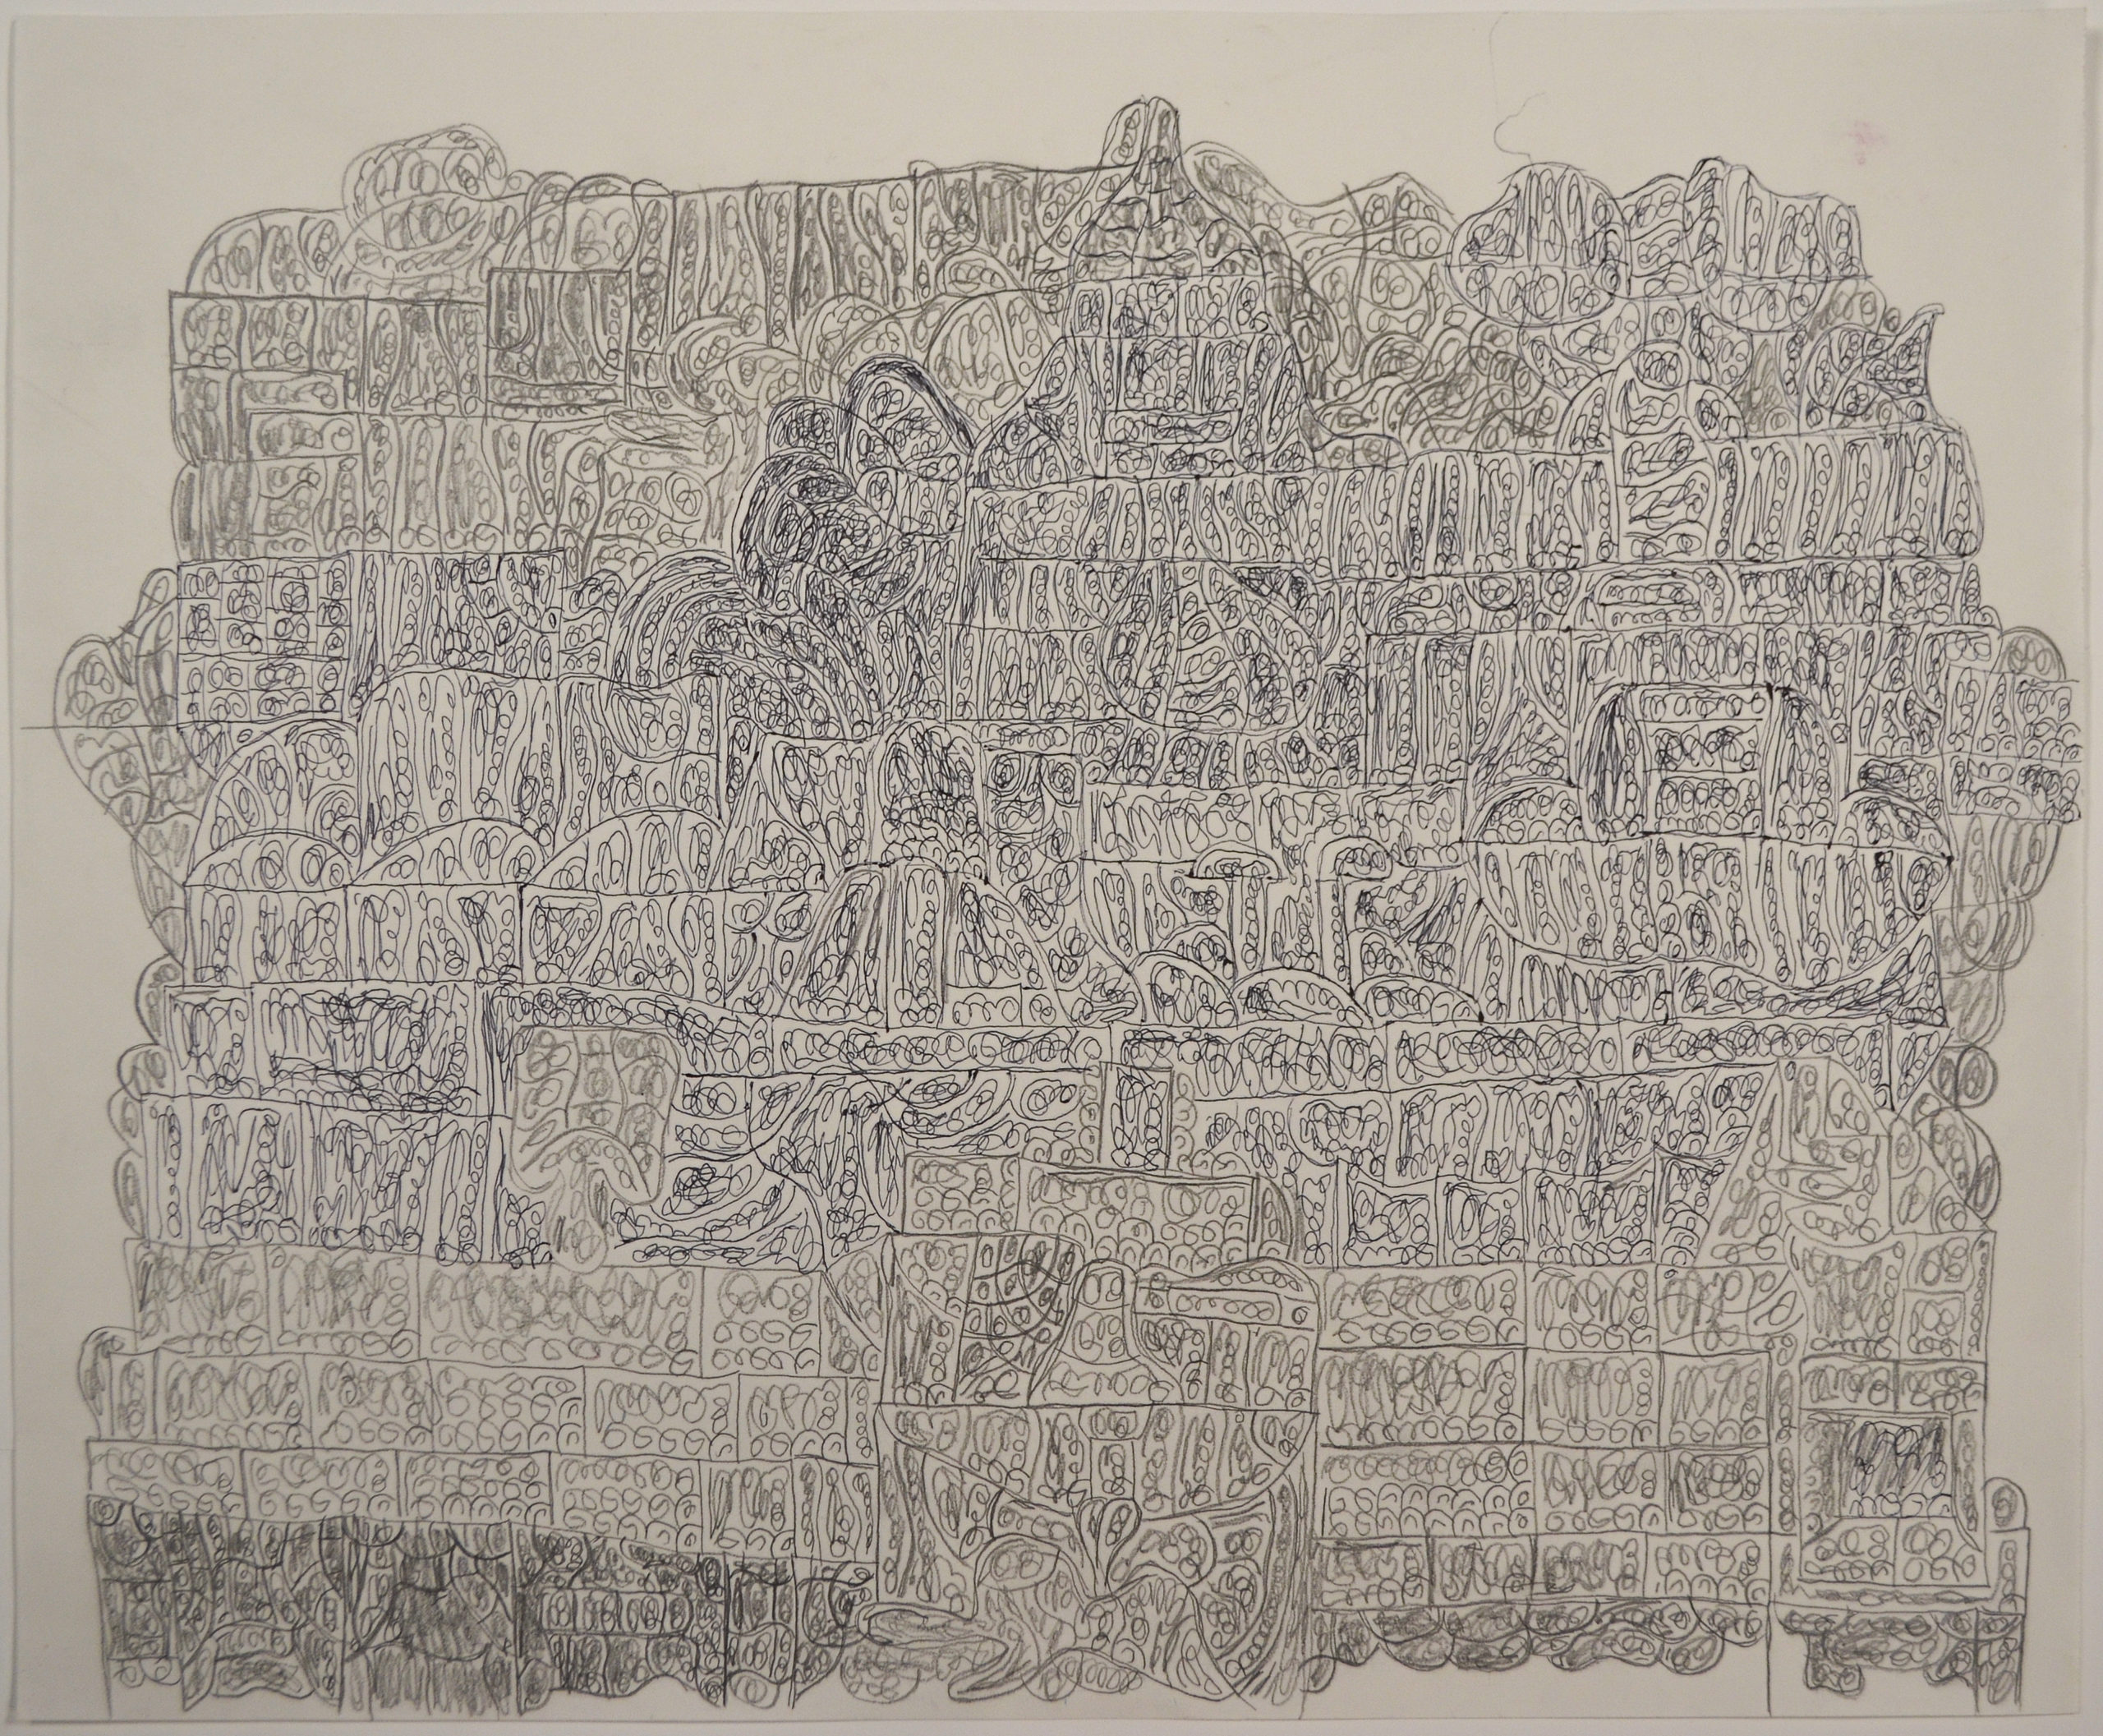 Untitled pencil and ink on paper by Sidney Perry